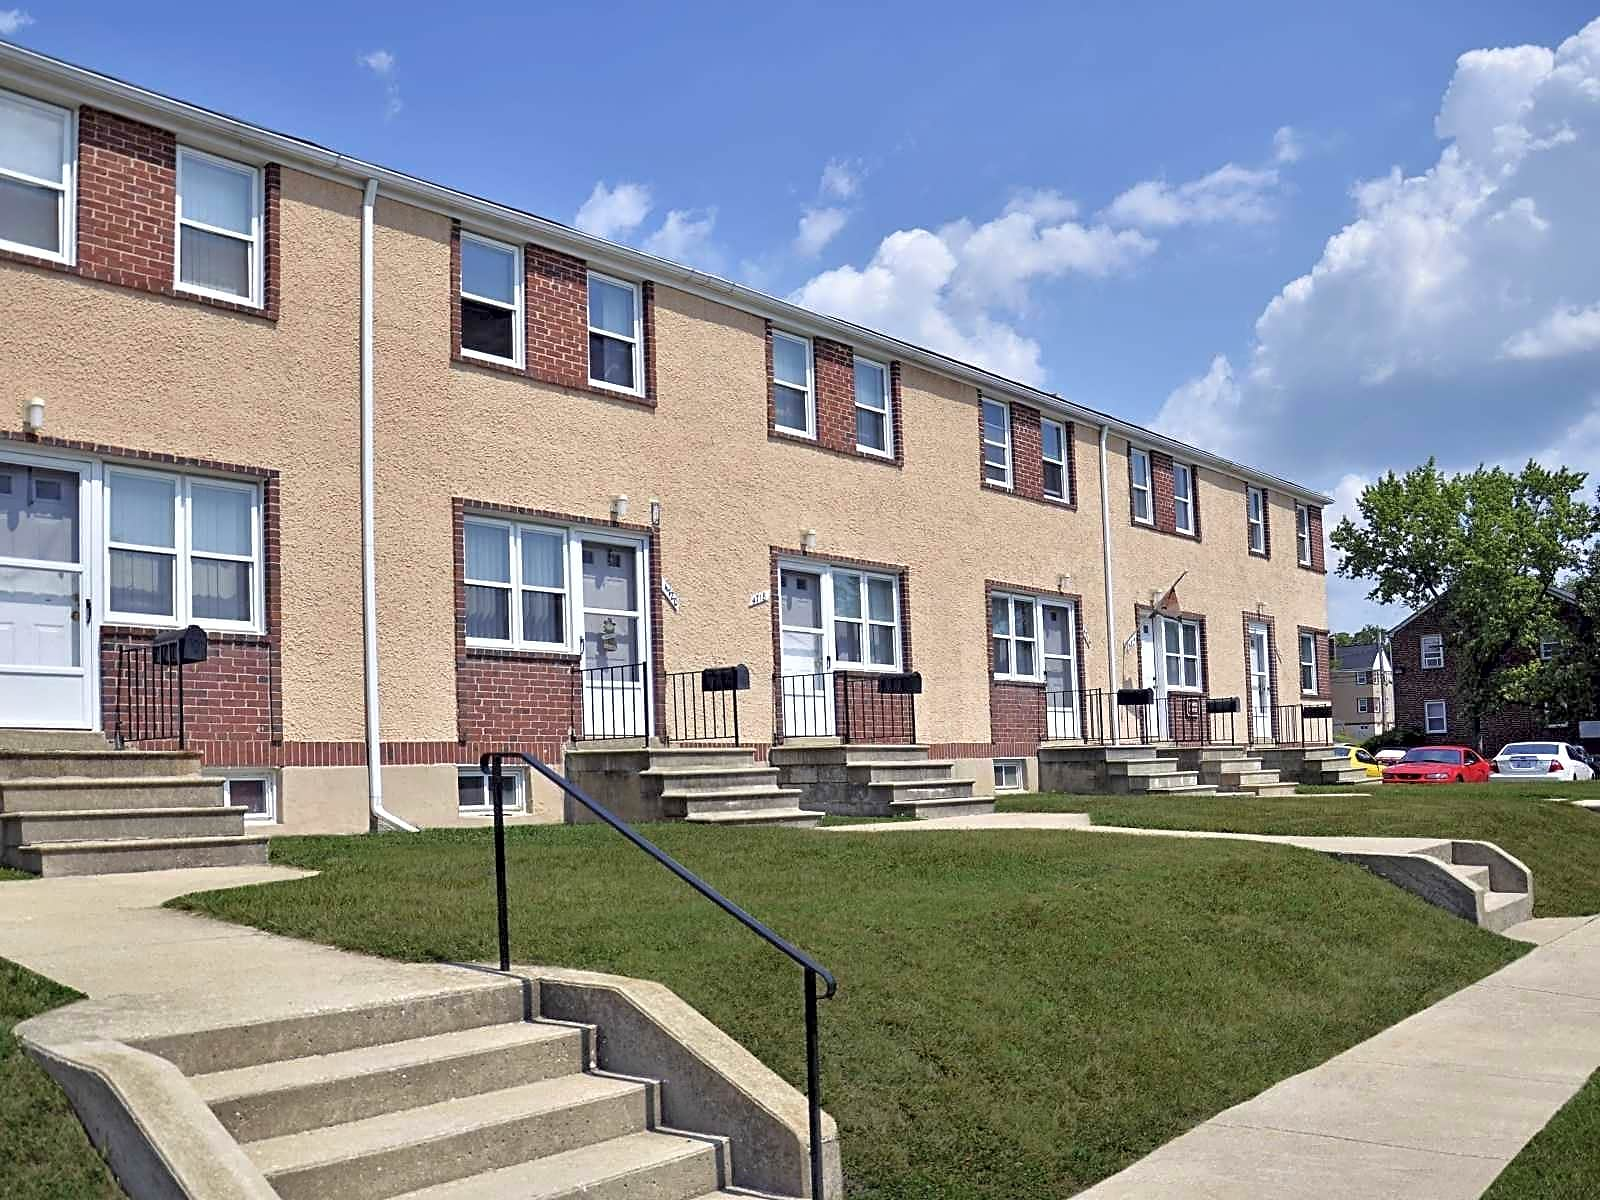 Apartments Near TESST College of Technology-Baltimore Westland Gardens Apartments & Townhouses for TESST College of Technology-Baltimore Students in Baltimore, MD